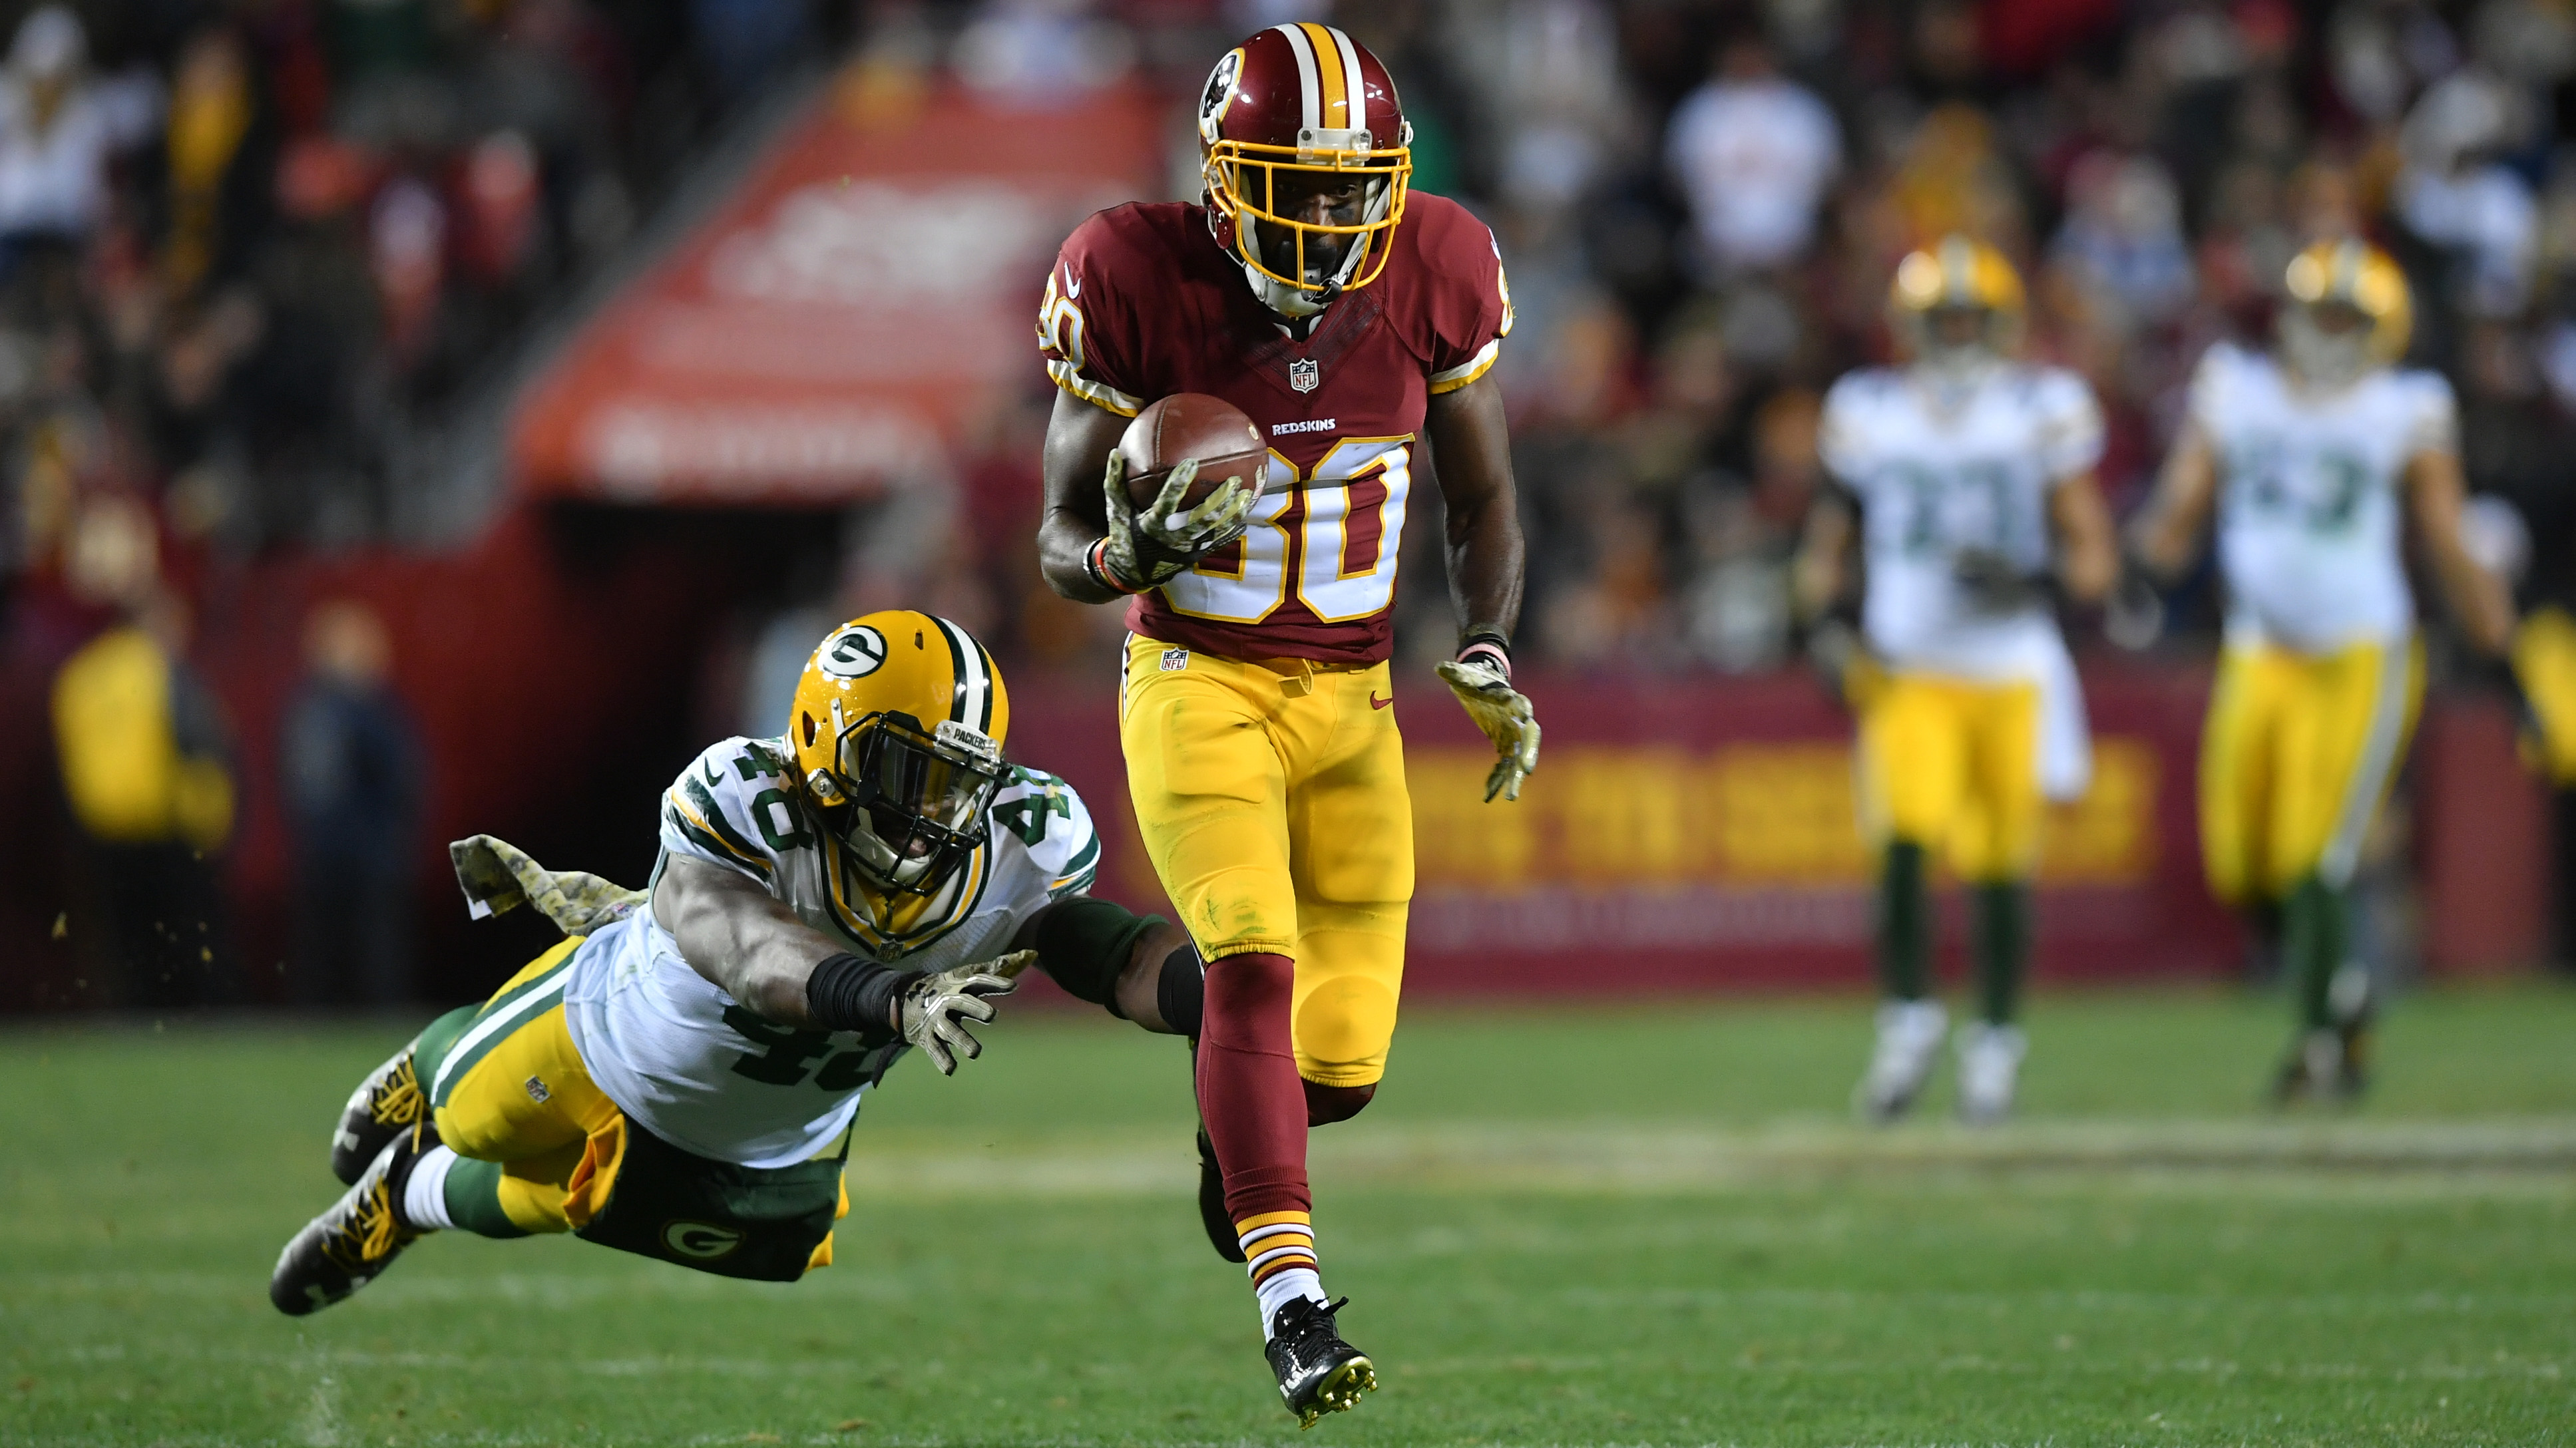 NFL – Greenbay Packers at Washington Redskins